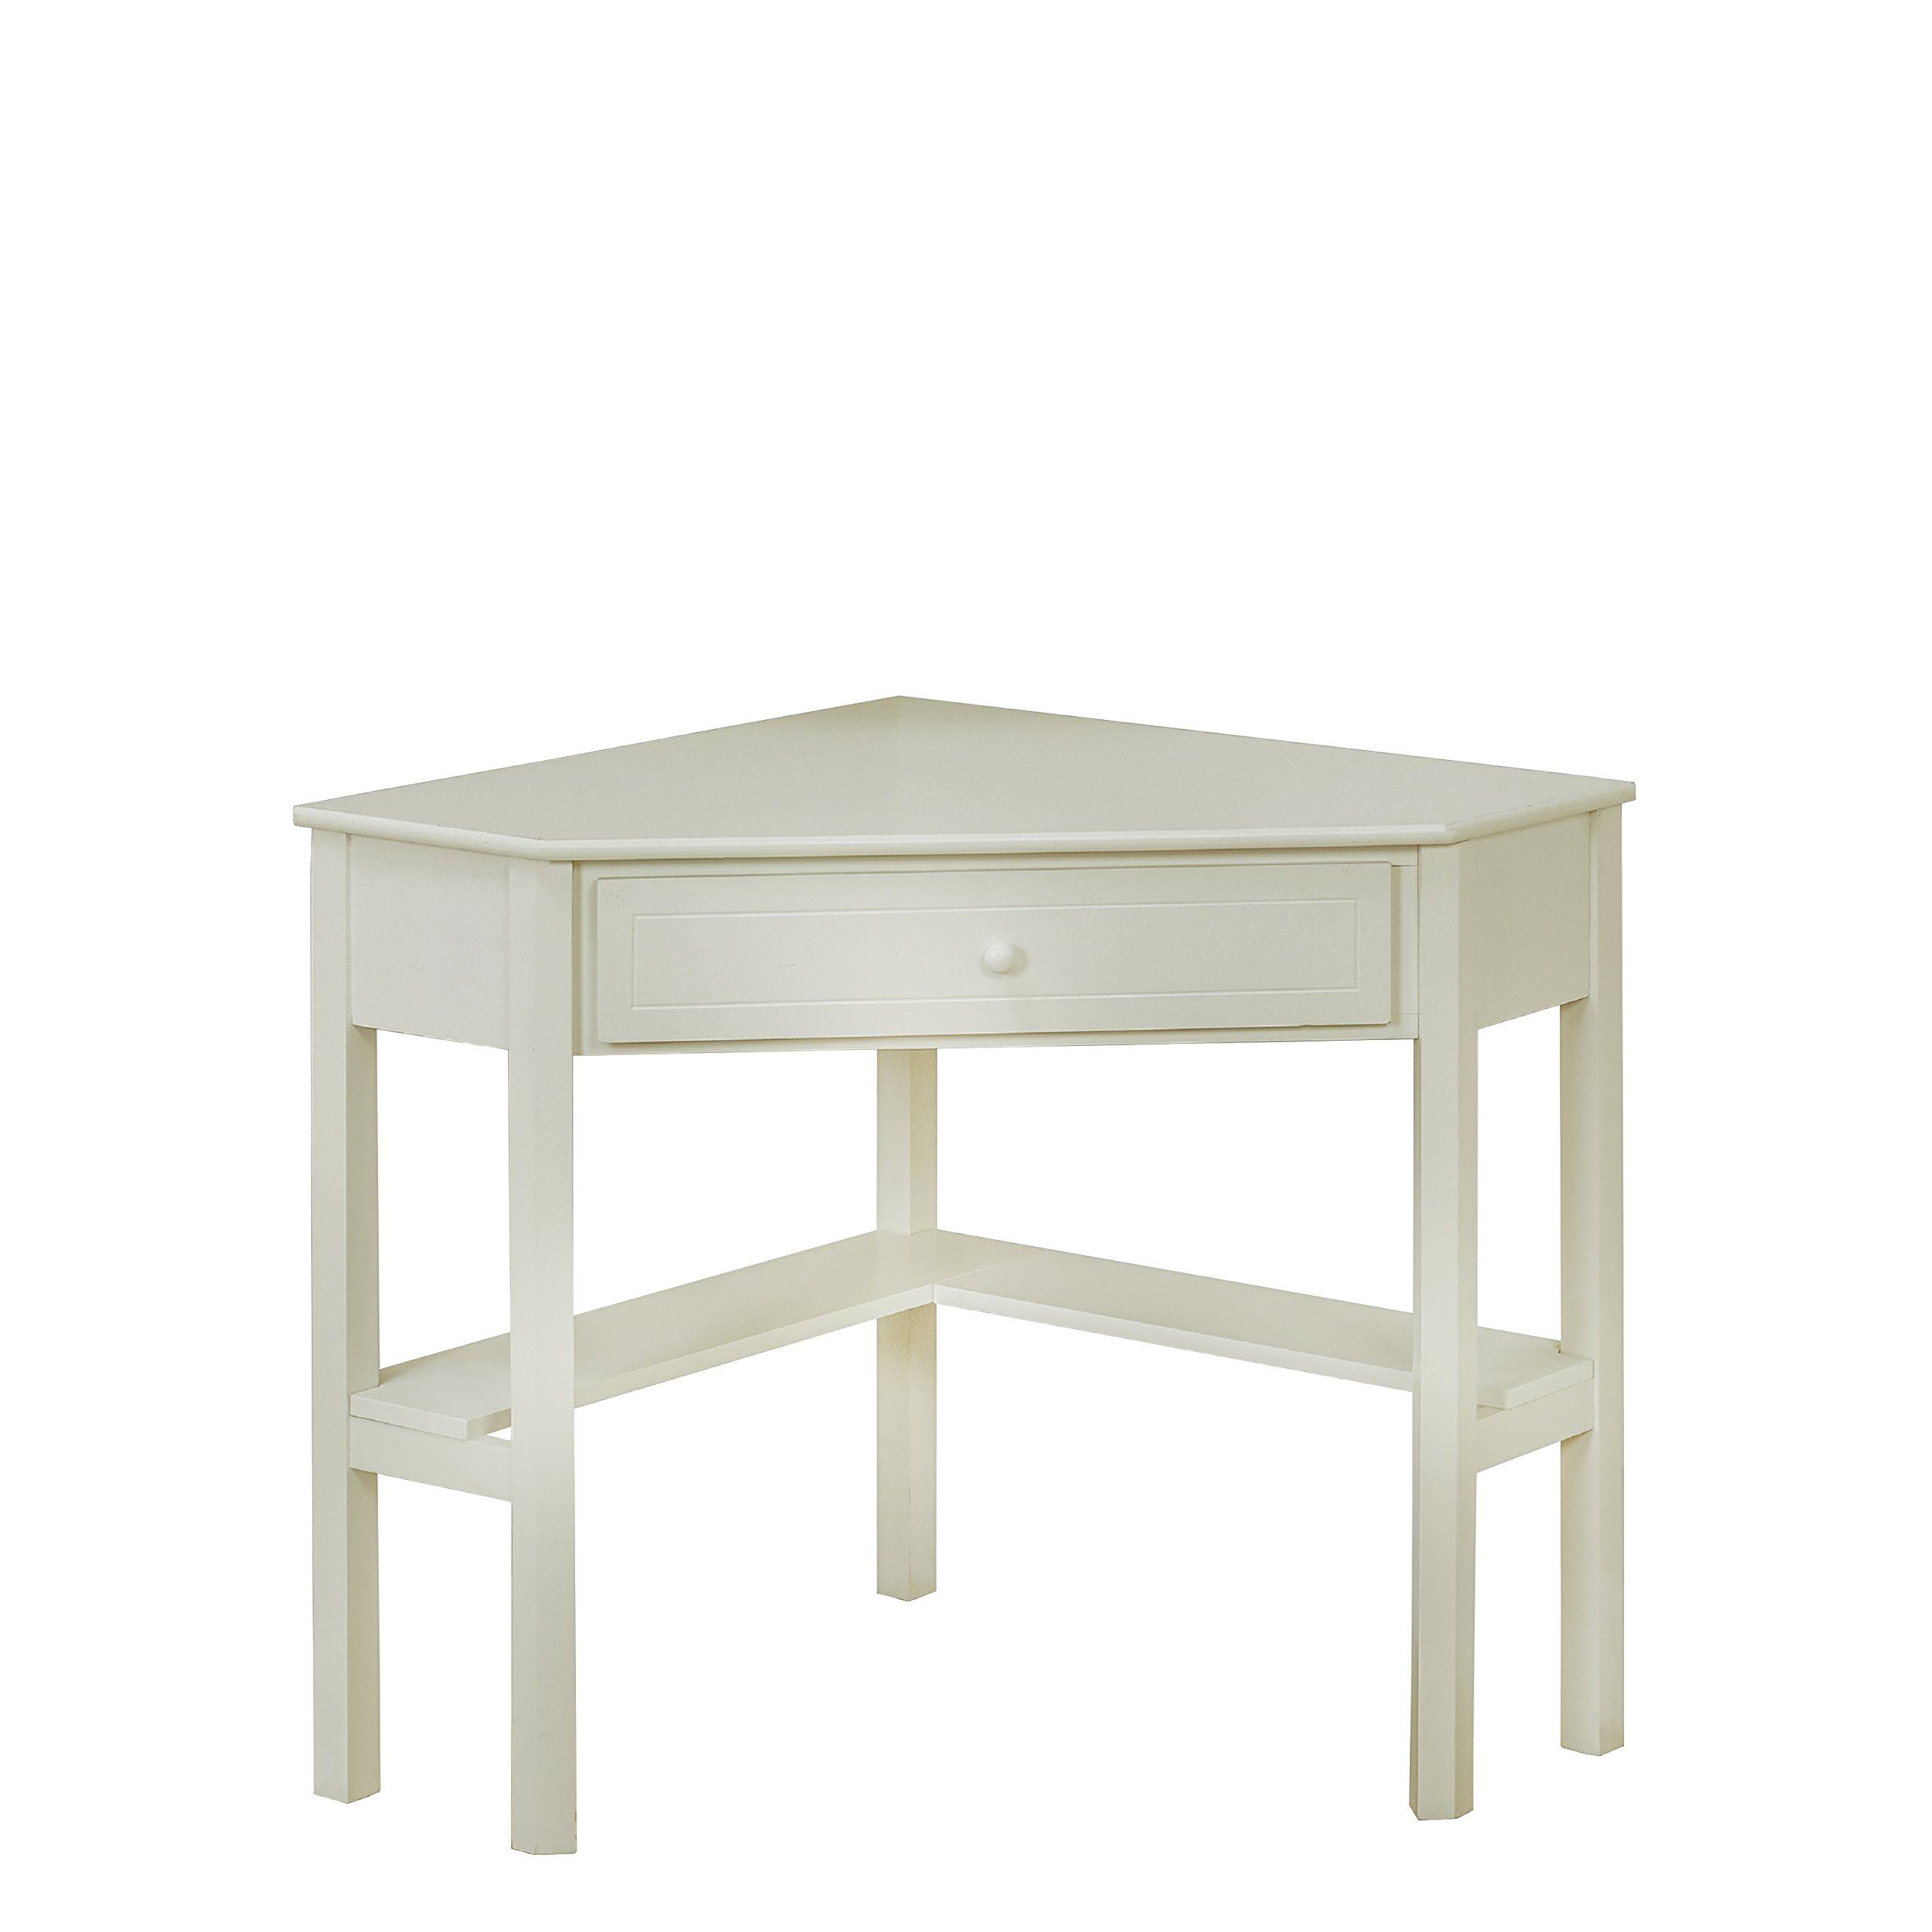 Target Marketing Systems Wood Corner Desk with One Drawer and One Storage Shelf, Antique White Finish by Target Marketing Systems